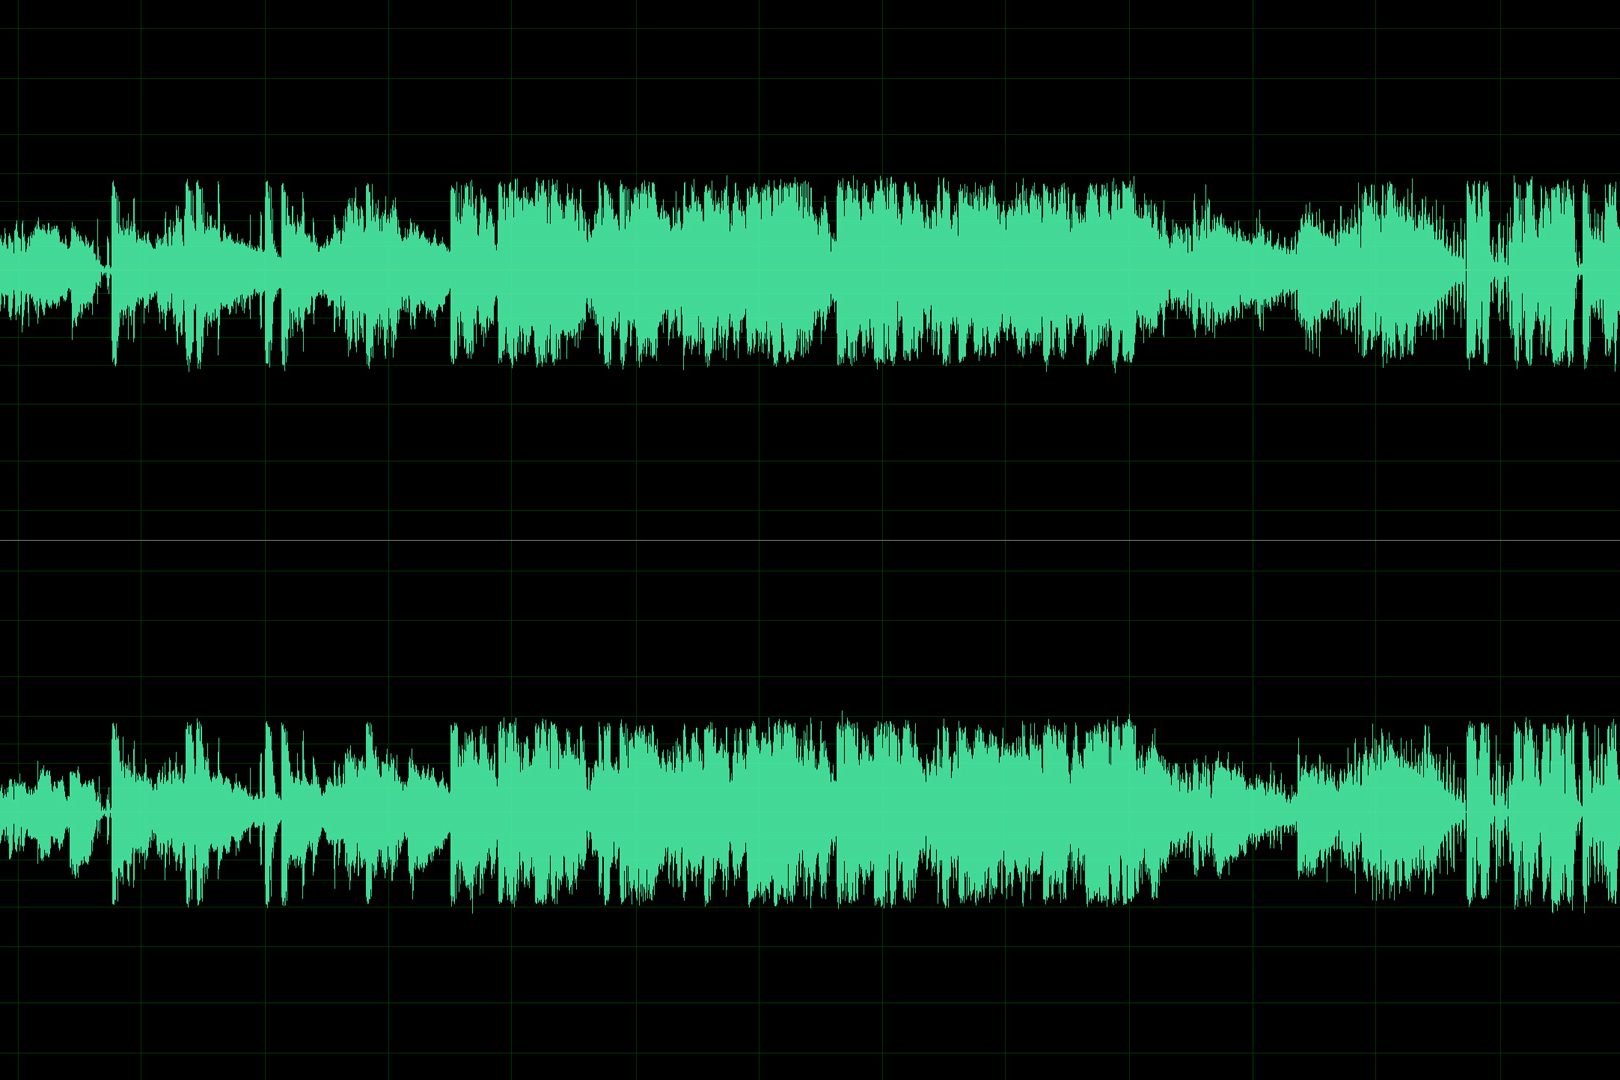 Stereo Audio Spectrum from Adobe Audition